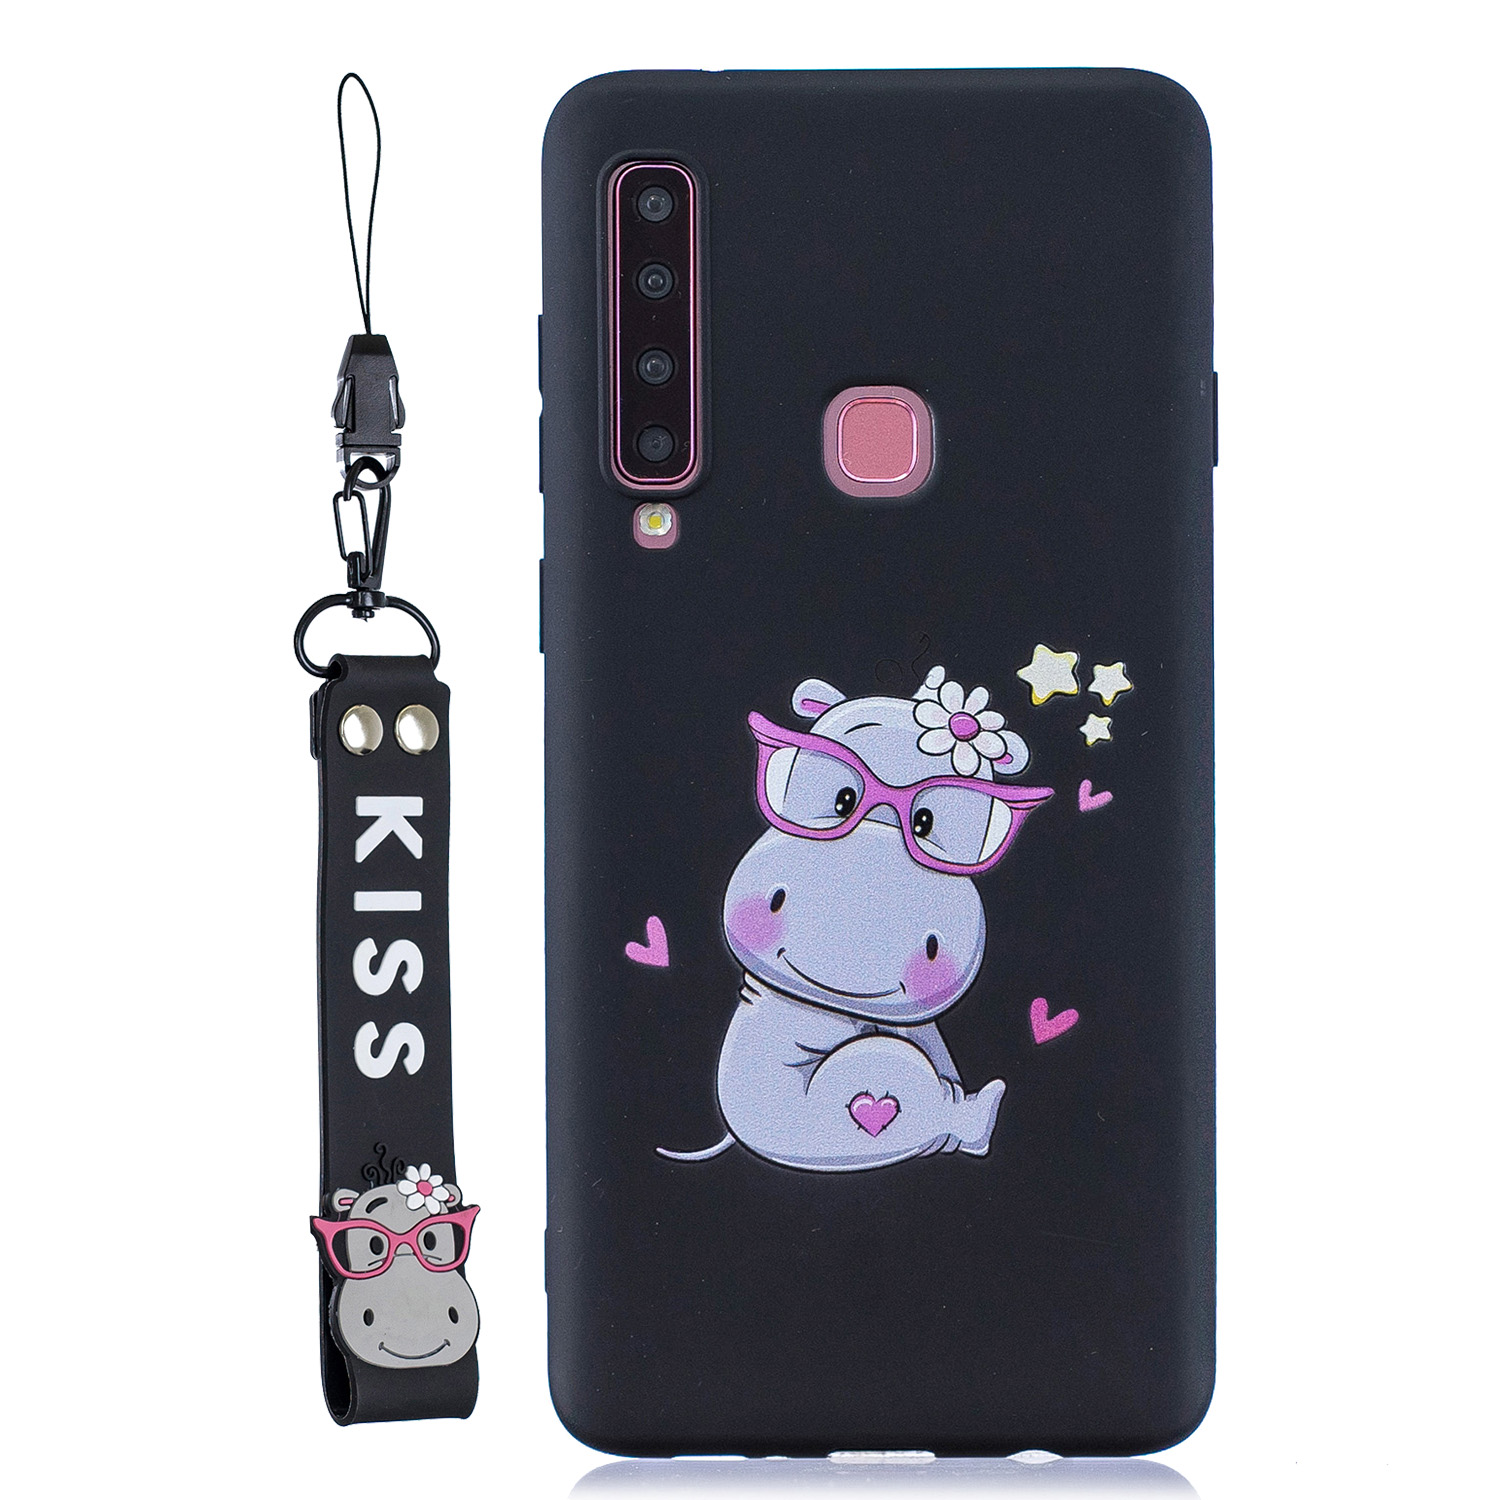 For Samsung A9 2018 Cartoon Lovely Coloured Painted Soft TPU Back Cover Non-slip Shockproof Full Protective Case with Lanyard black